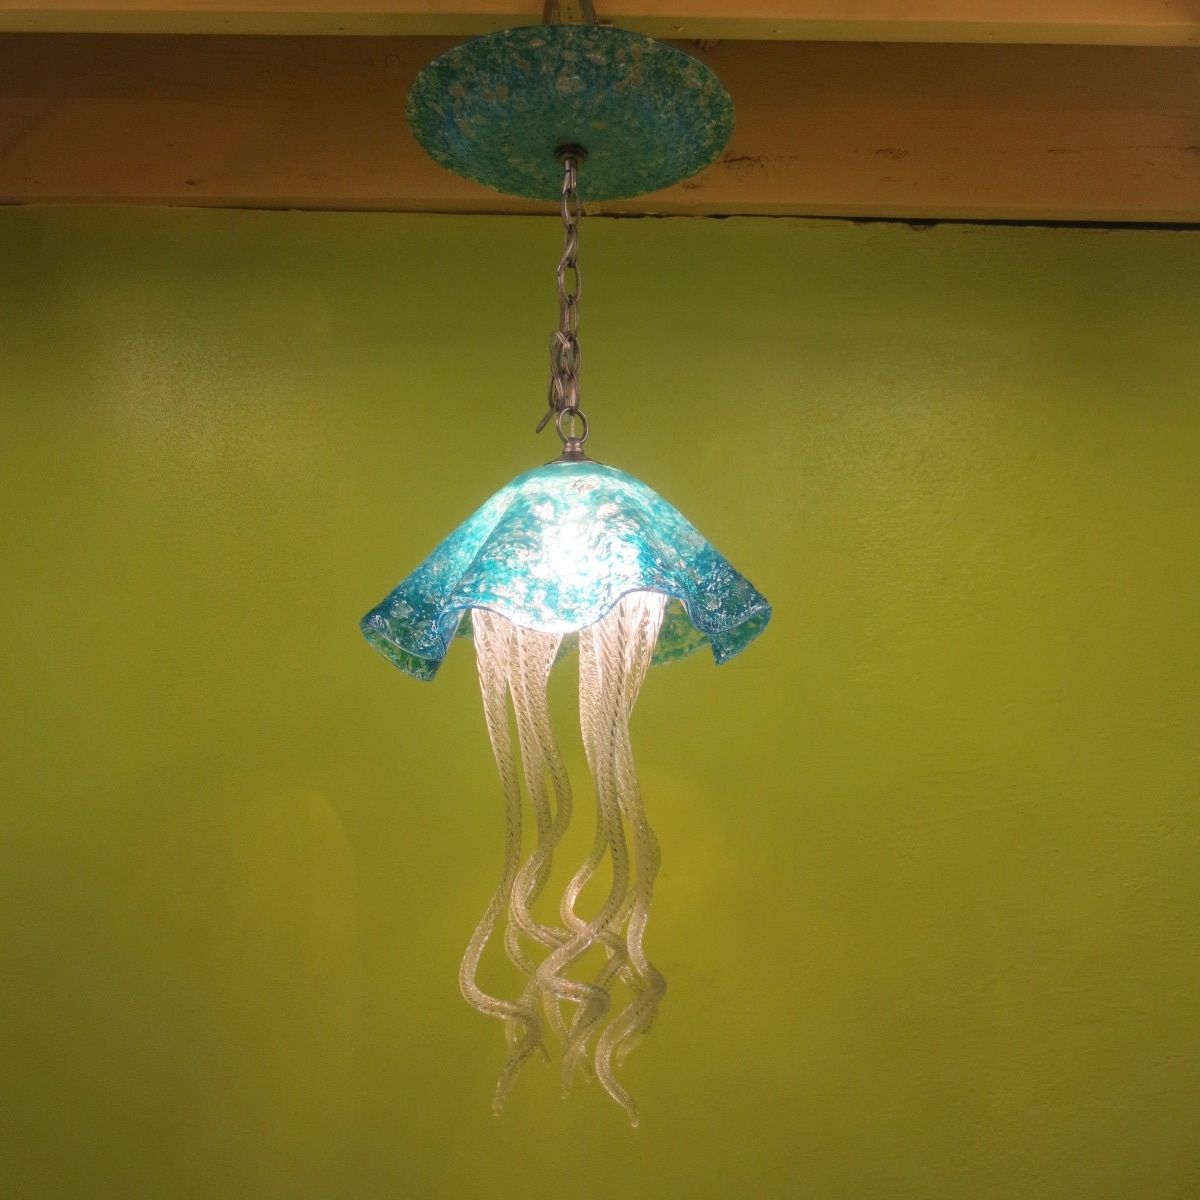 Buy a hand made jellyfish pendant light turquoise jellyfish buy a hand made jellyfish pendant light turquoise jellyfish blown glass lighting art glass chandelier made to order from primo glass lighting aloadofball Choice Image